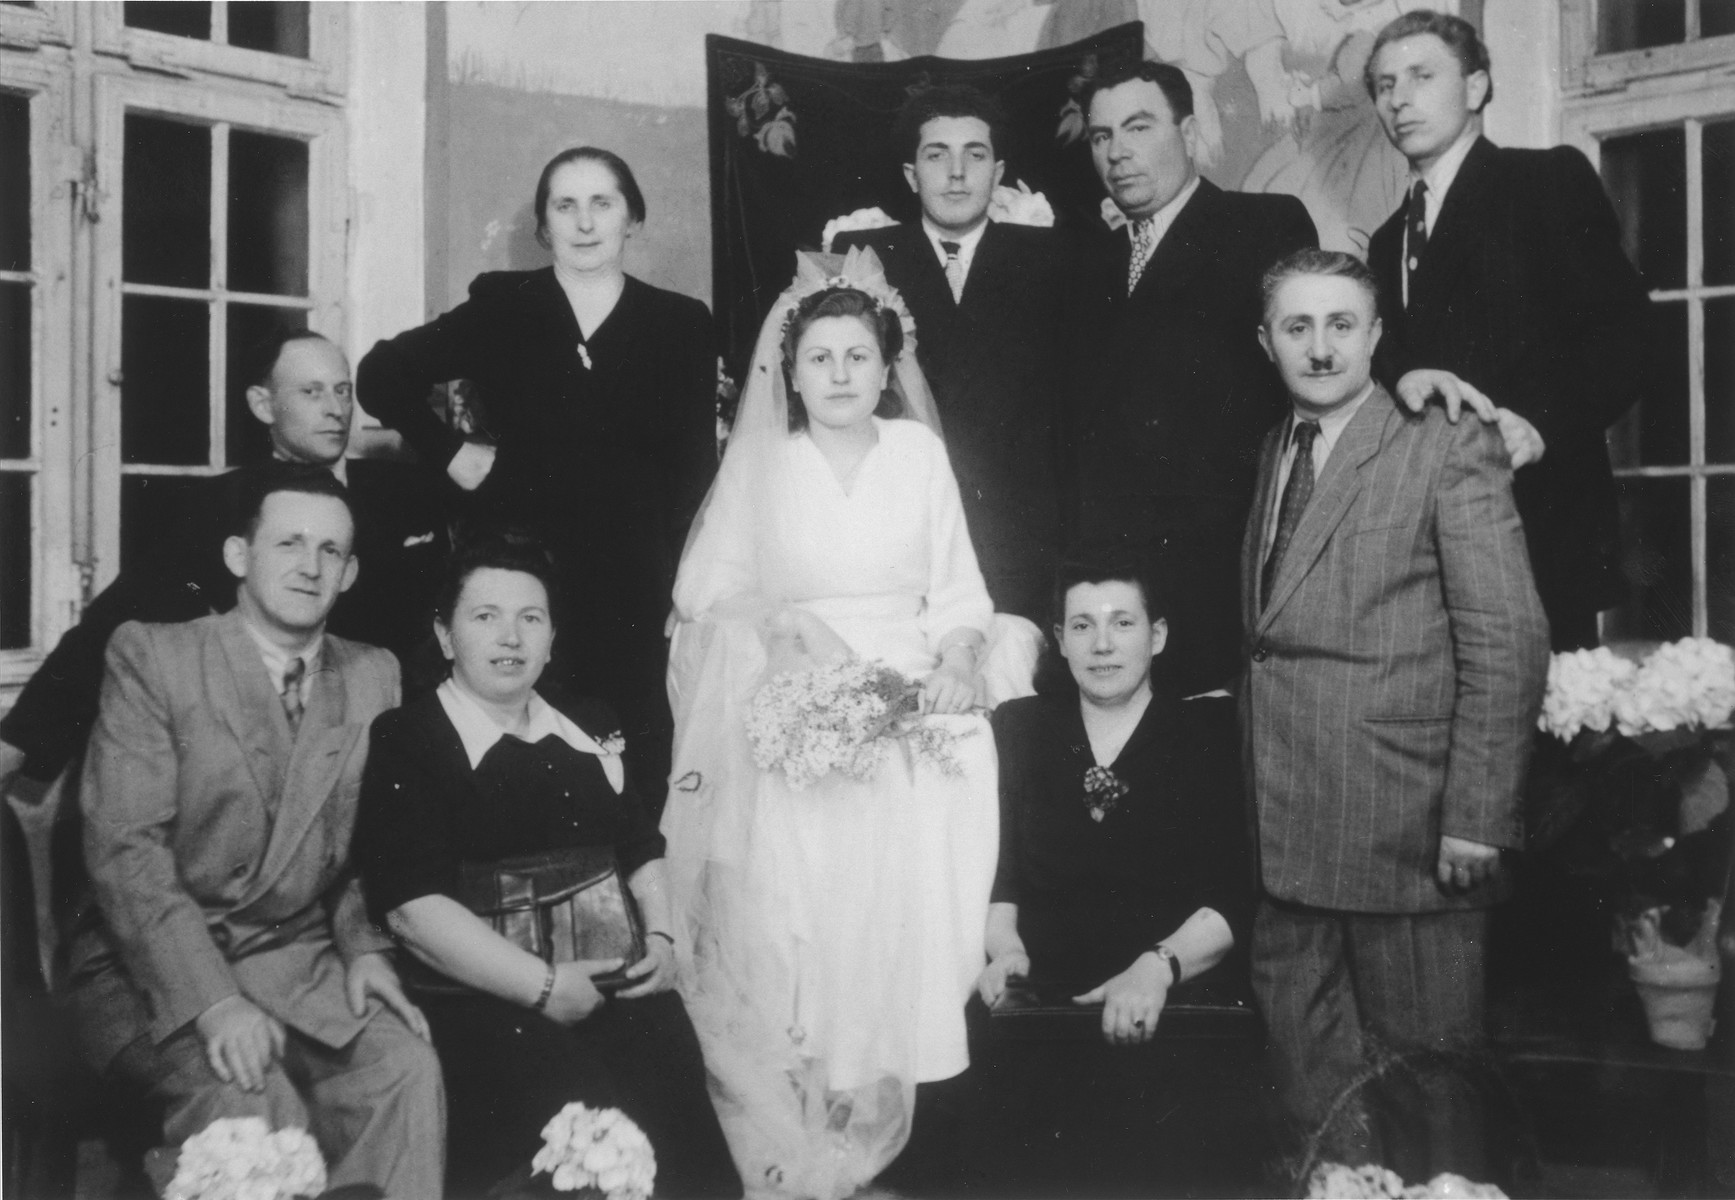 Group portrait of members of a wedding party in the Ulm displaced persons camp.  Among those pictured are Hershel and Chaja Rajs (bottom left).